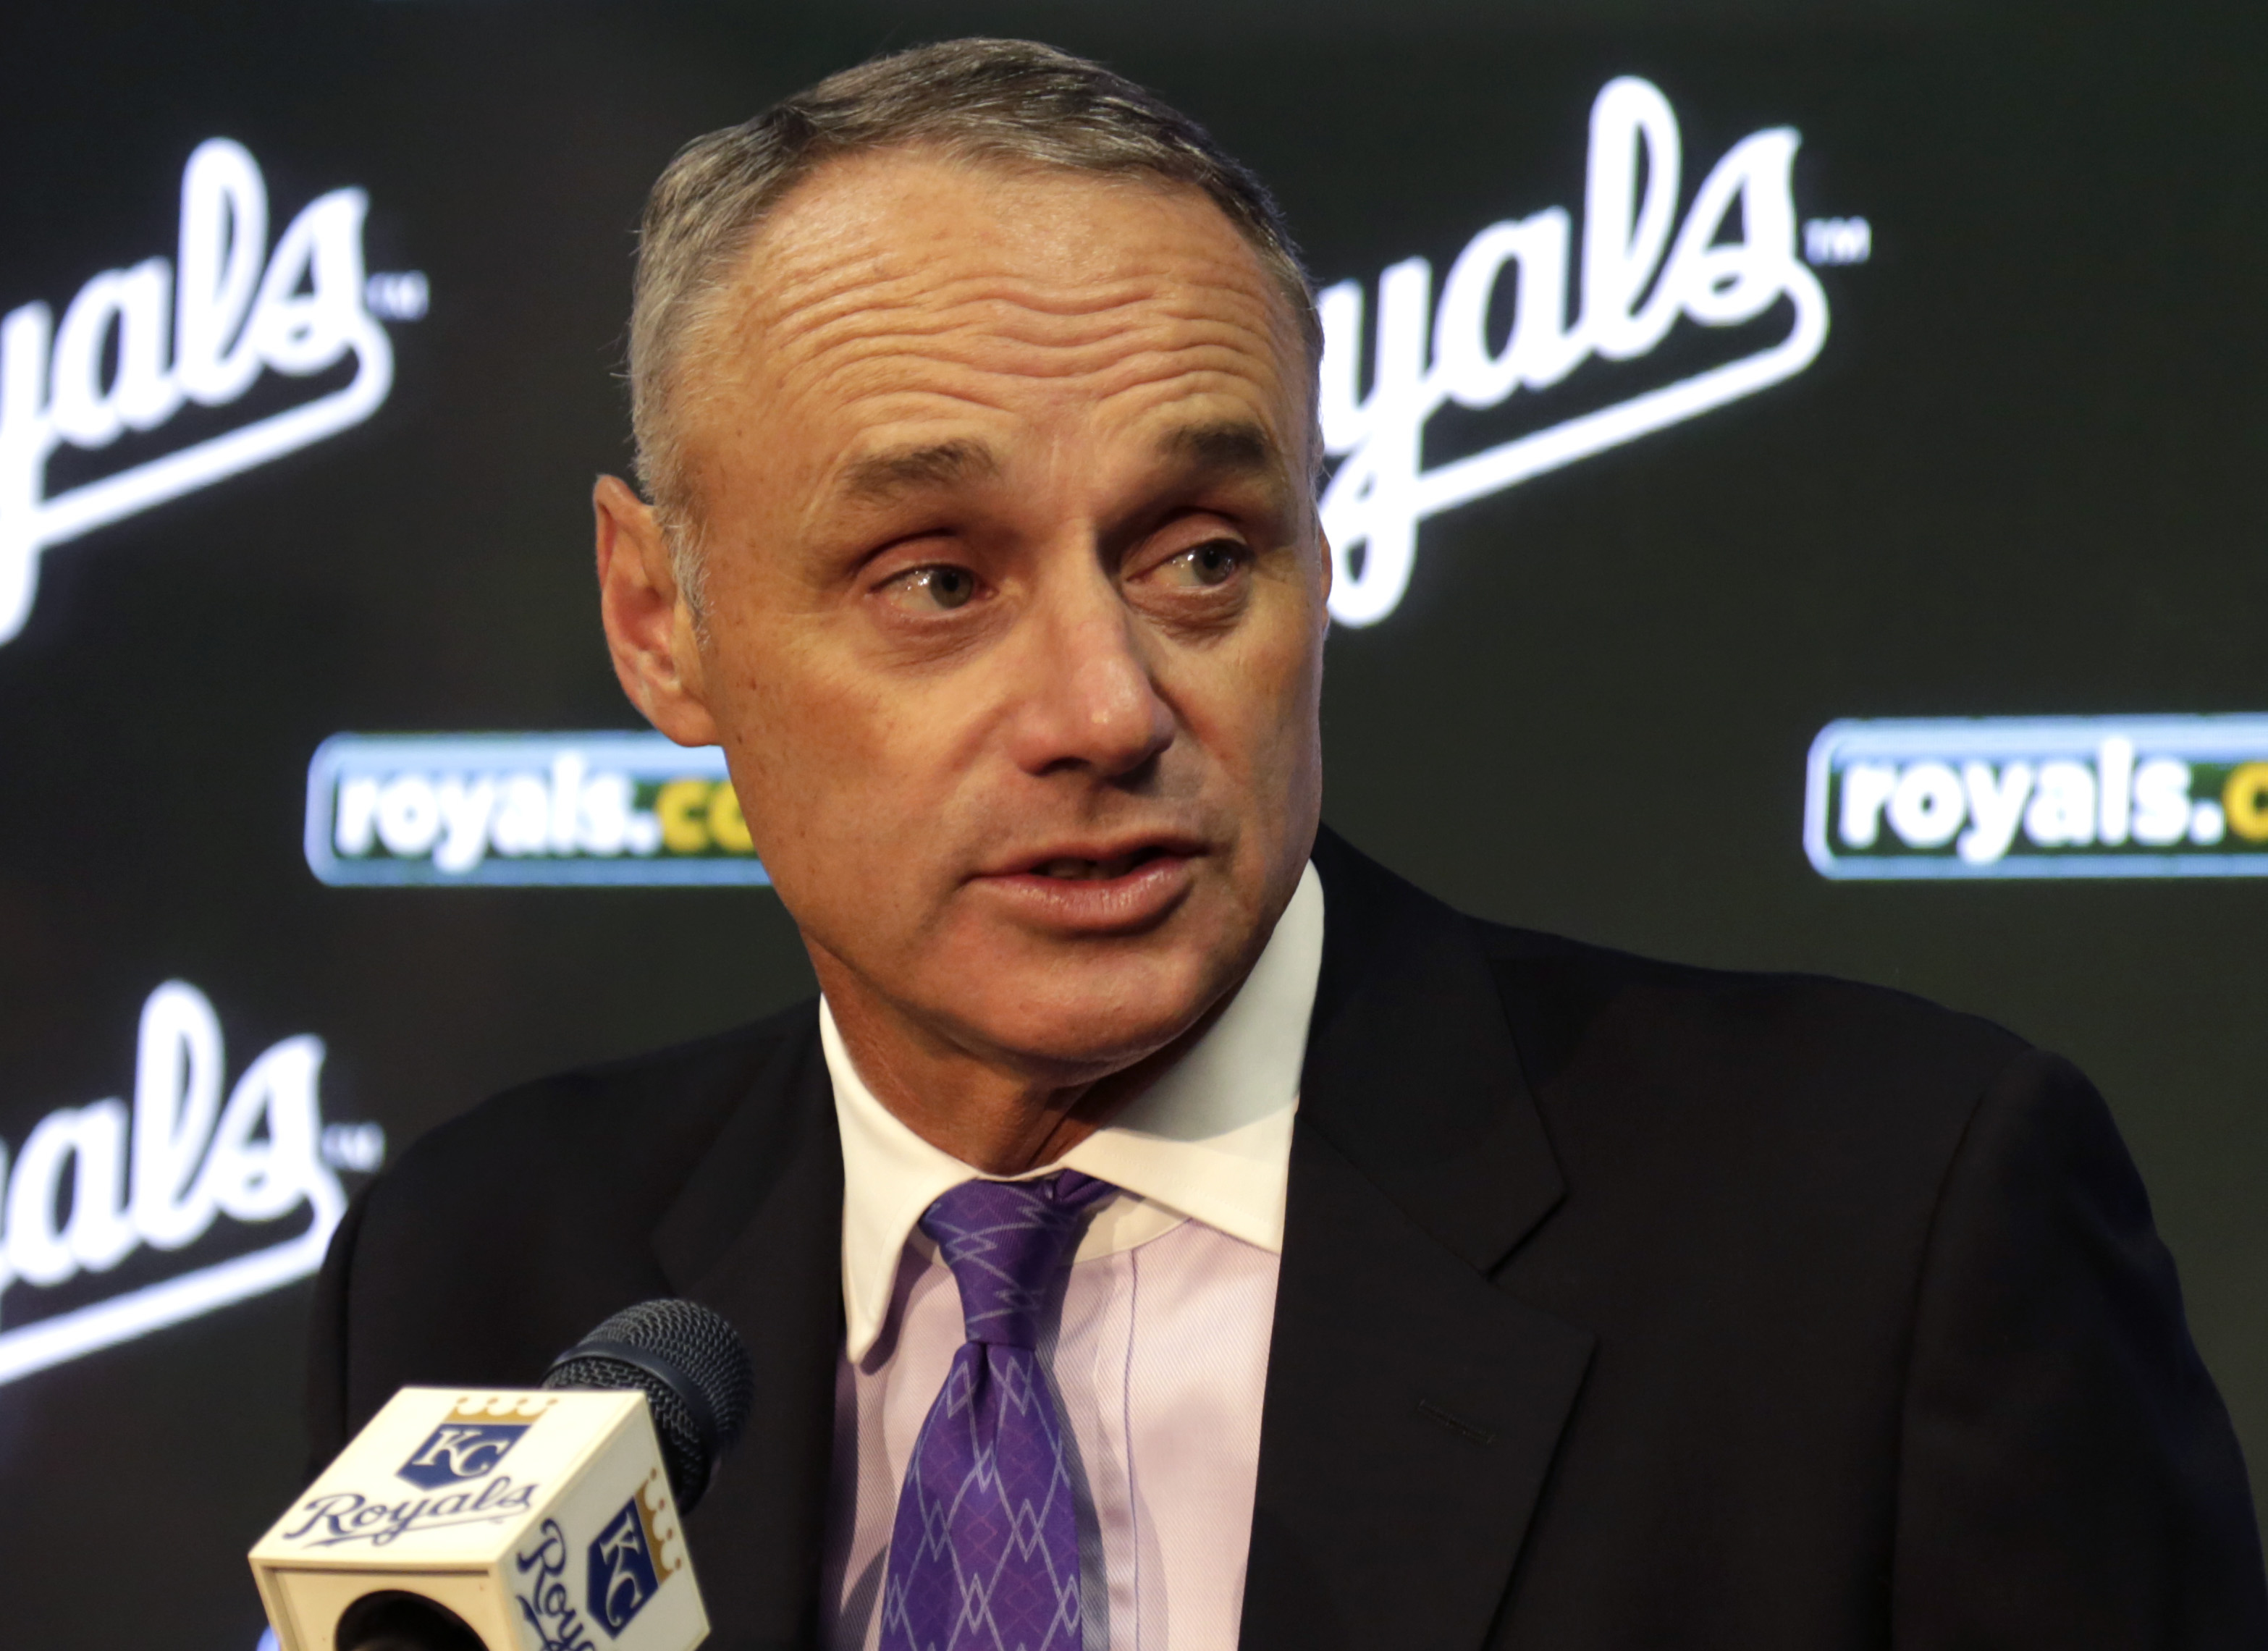 Baseball commissioner Rob Manfred answers a reporters question during a news conference before a baseball game between the Kansas City Royals and the New York Mets at Kauffman Stadium in Kansas City, Mo., Monday, April 4, 2016. (AP Photo/Colin E. Braley)